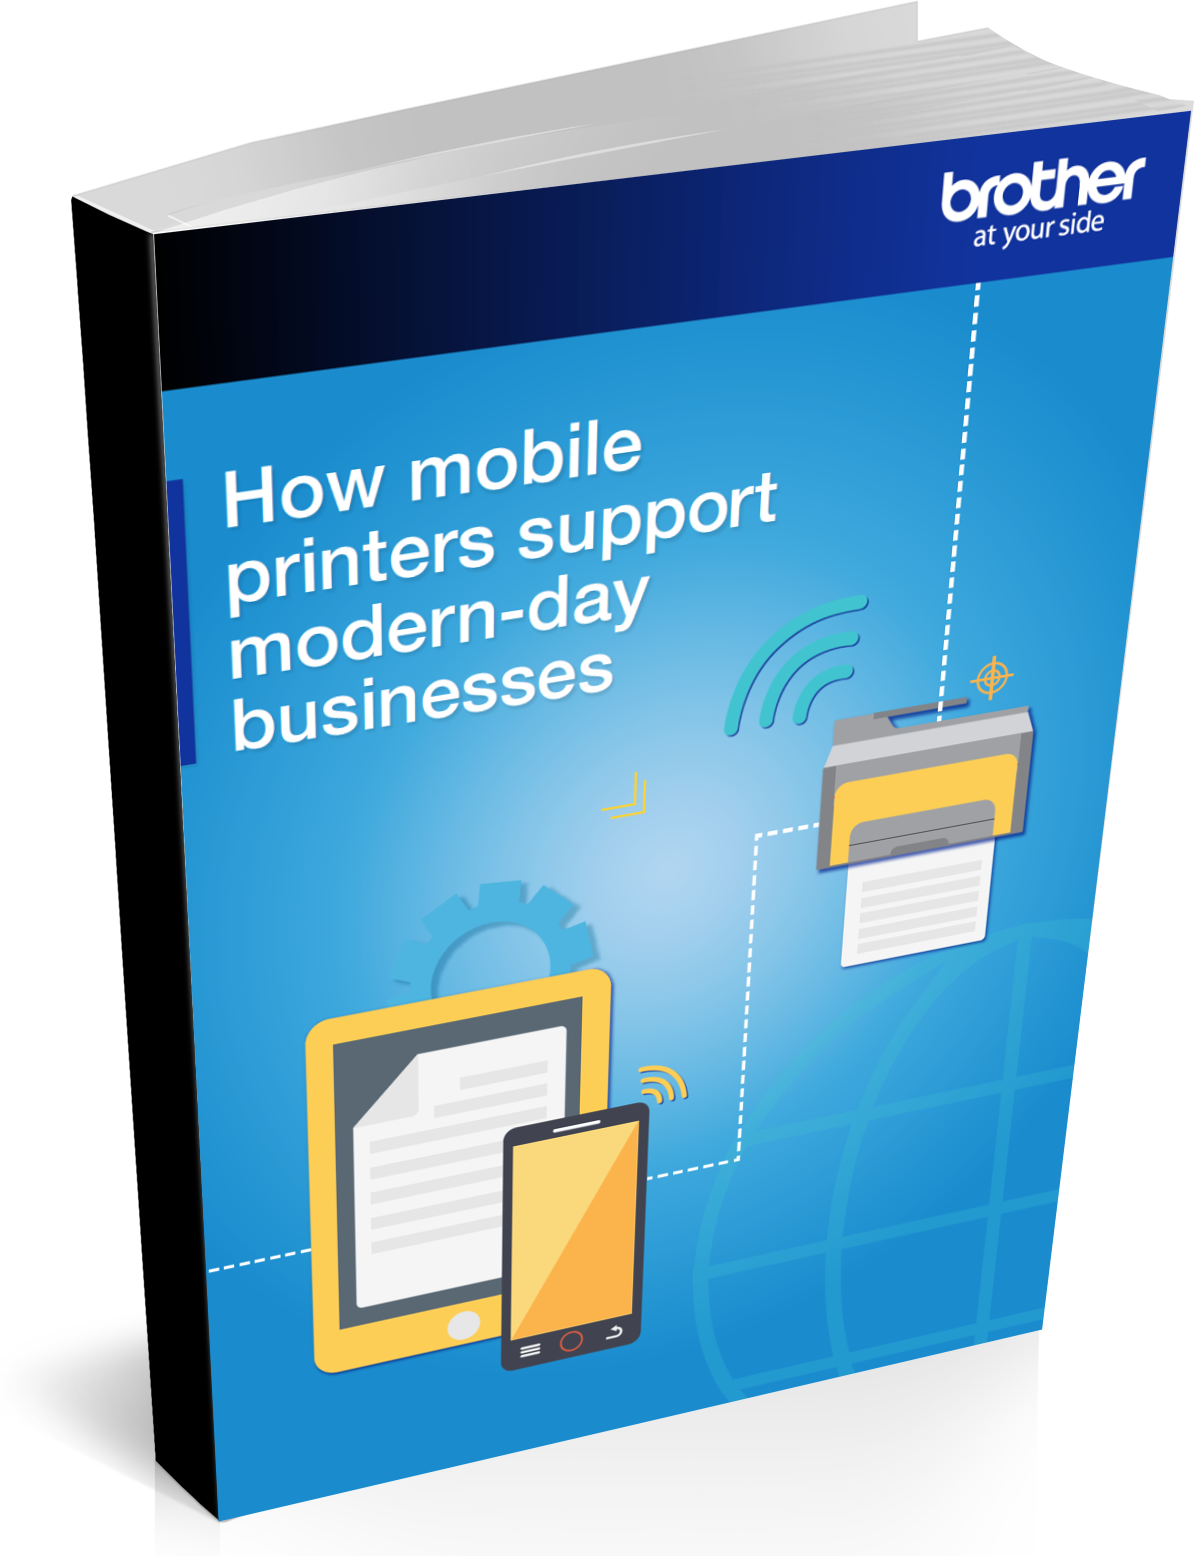 How mobile printers support modern-day businesses